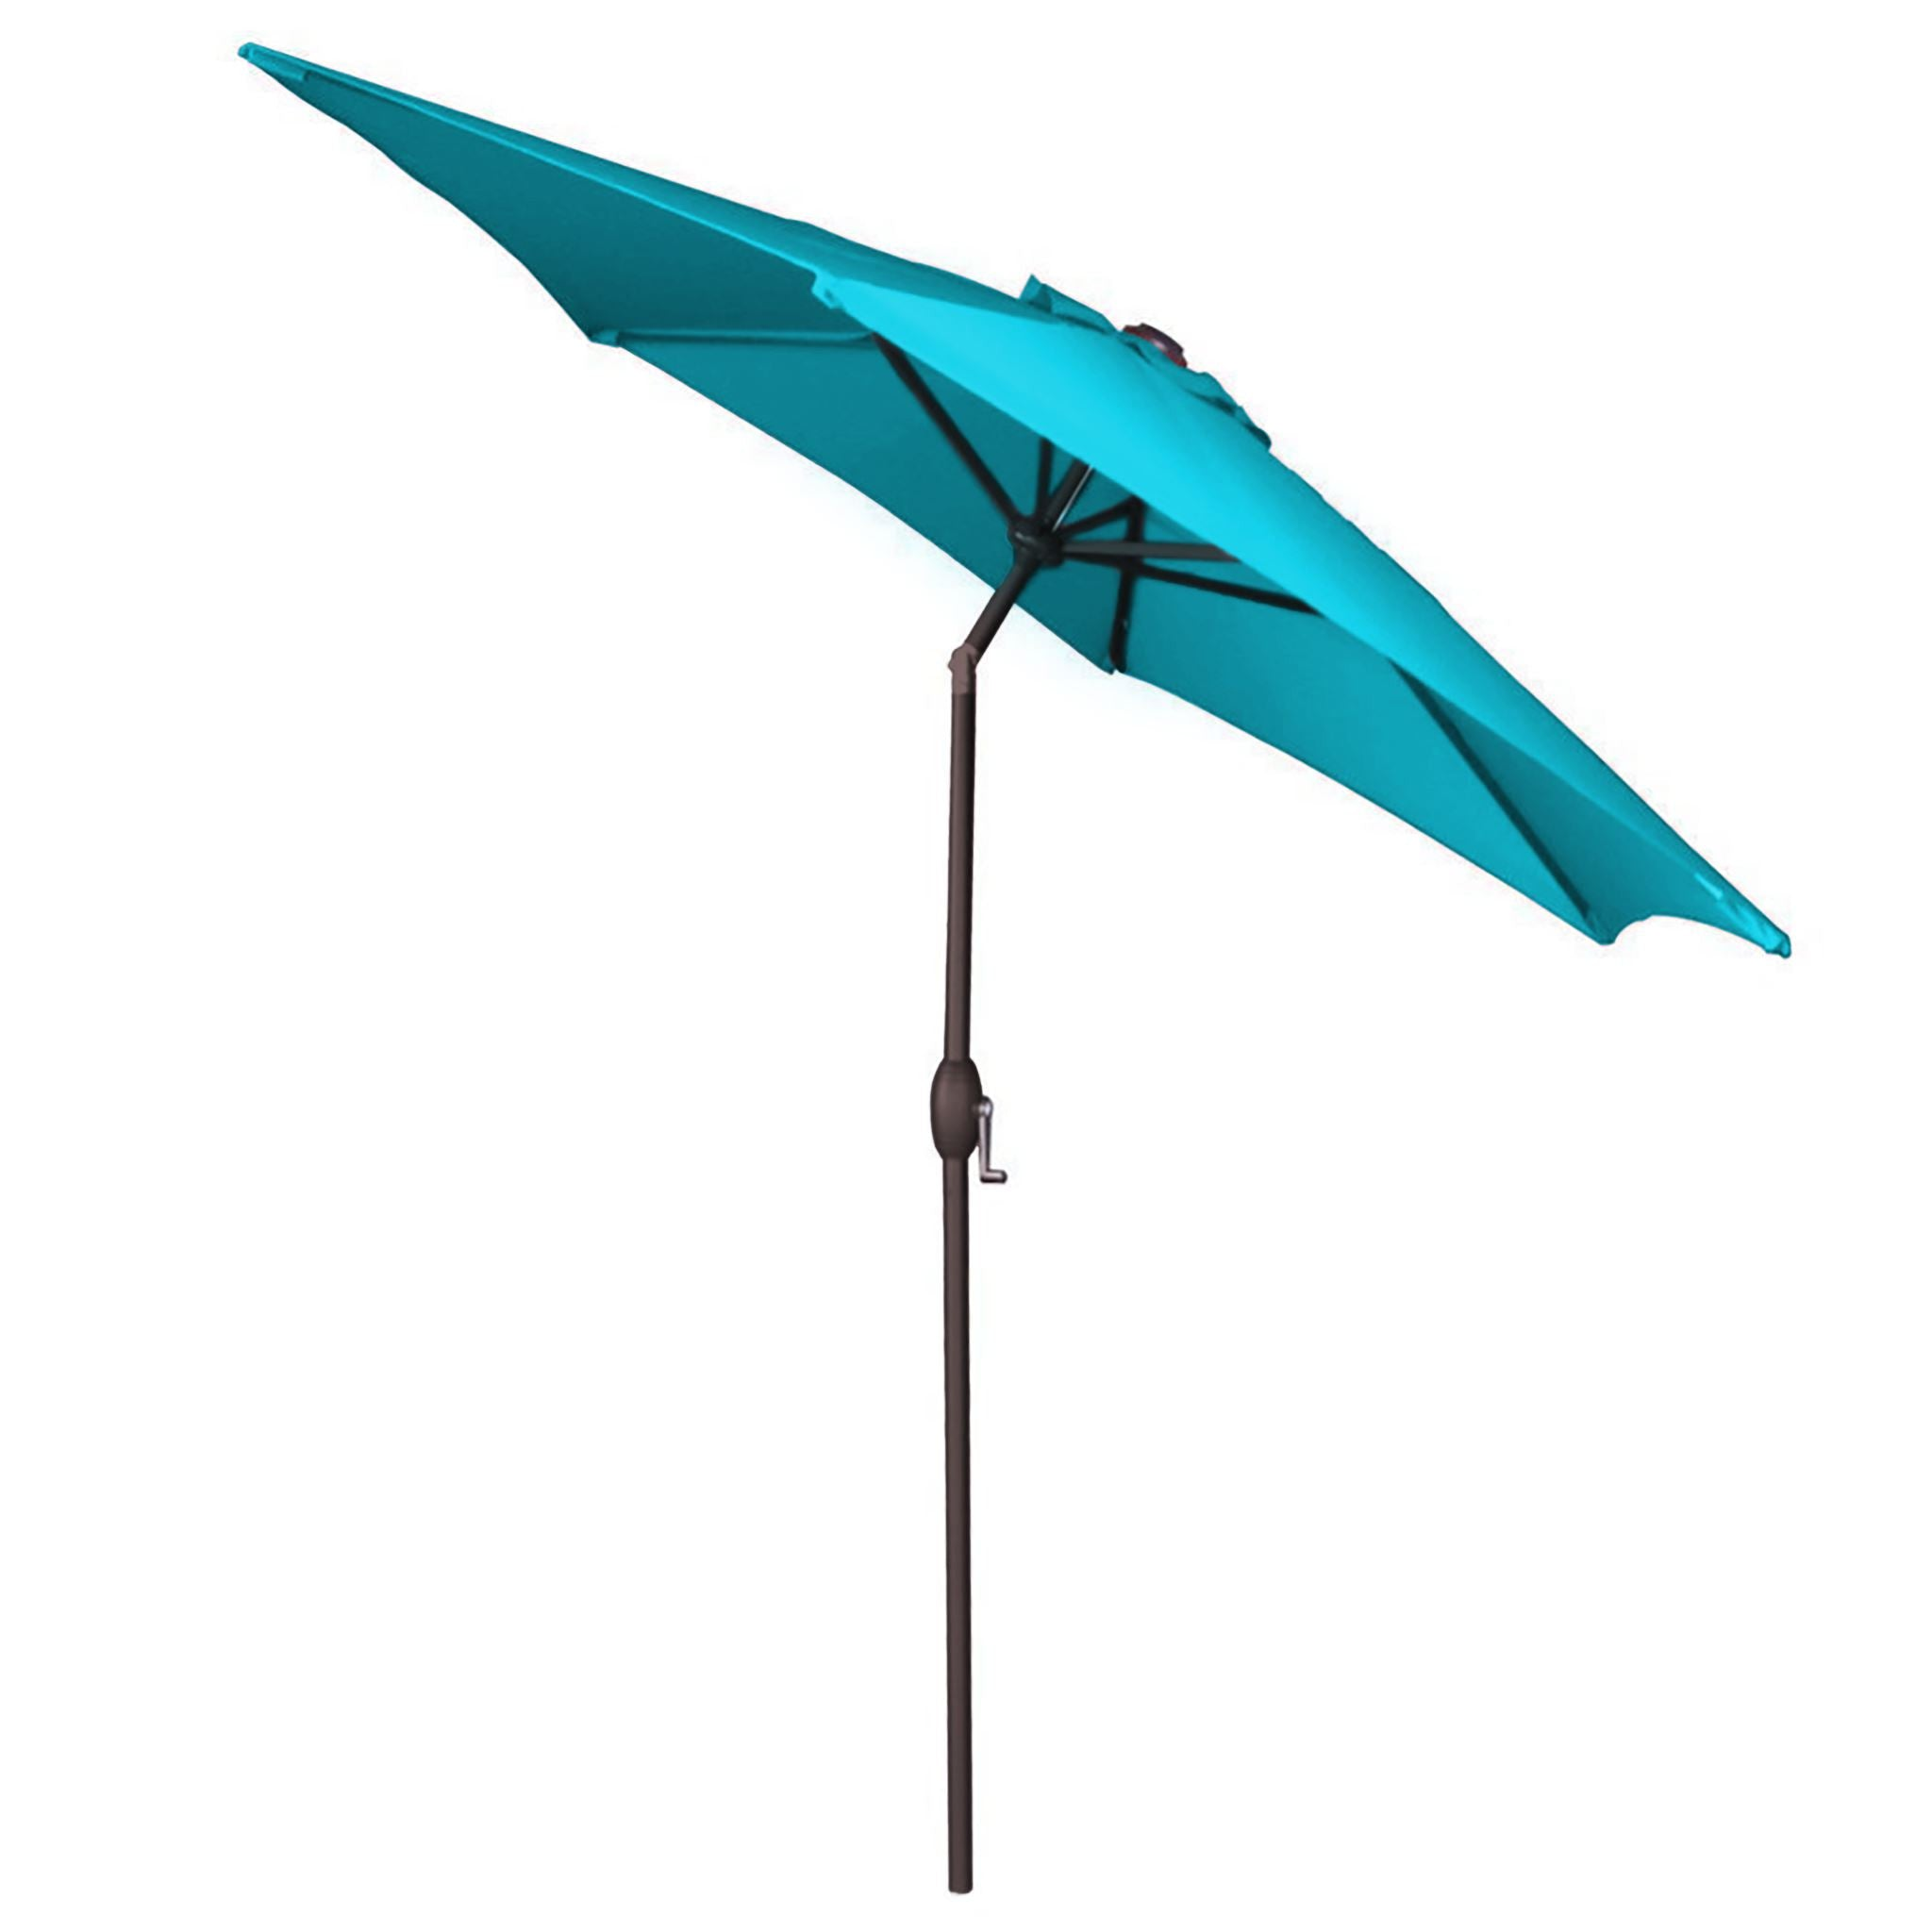 Panama Jack Teal 9 Ft Aluminum Patio Umbrella W Crank Pjo